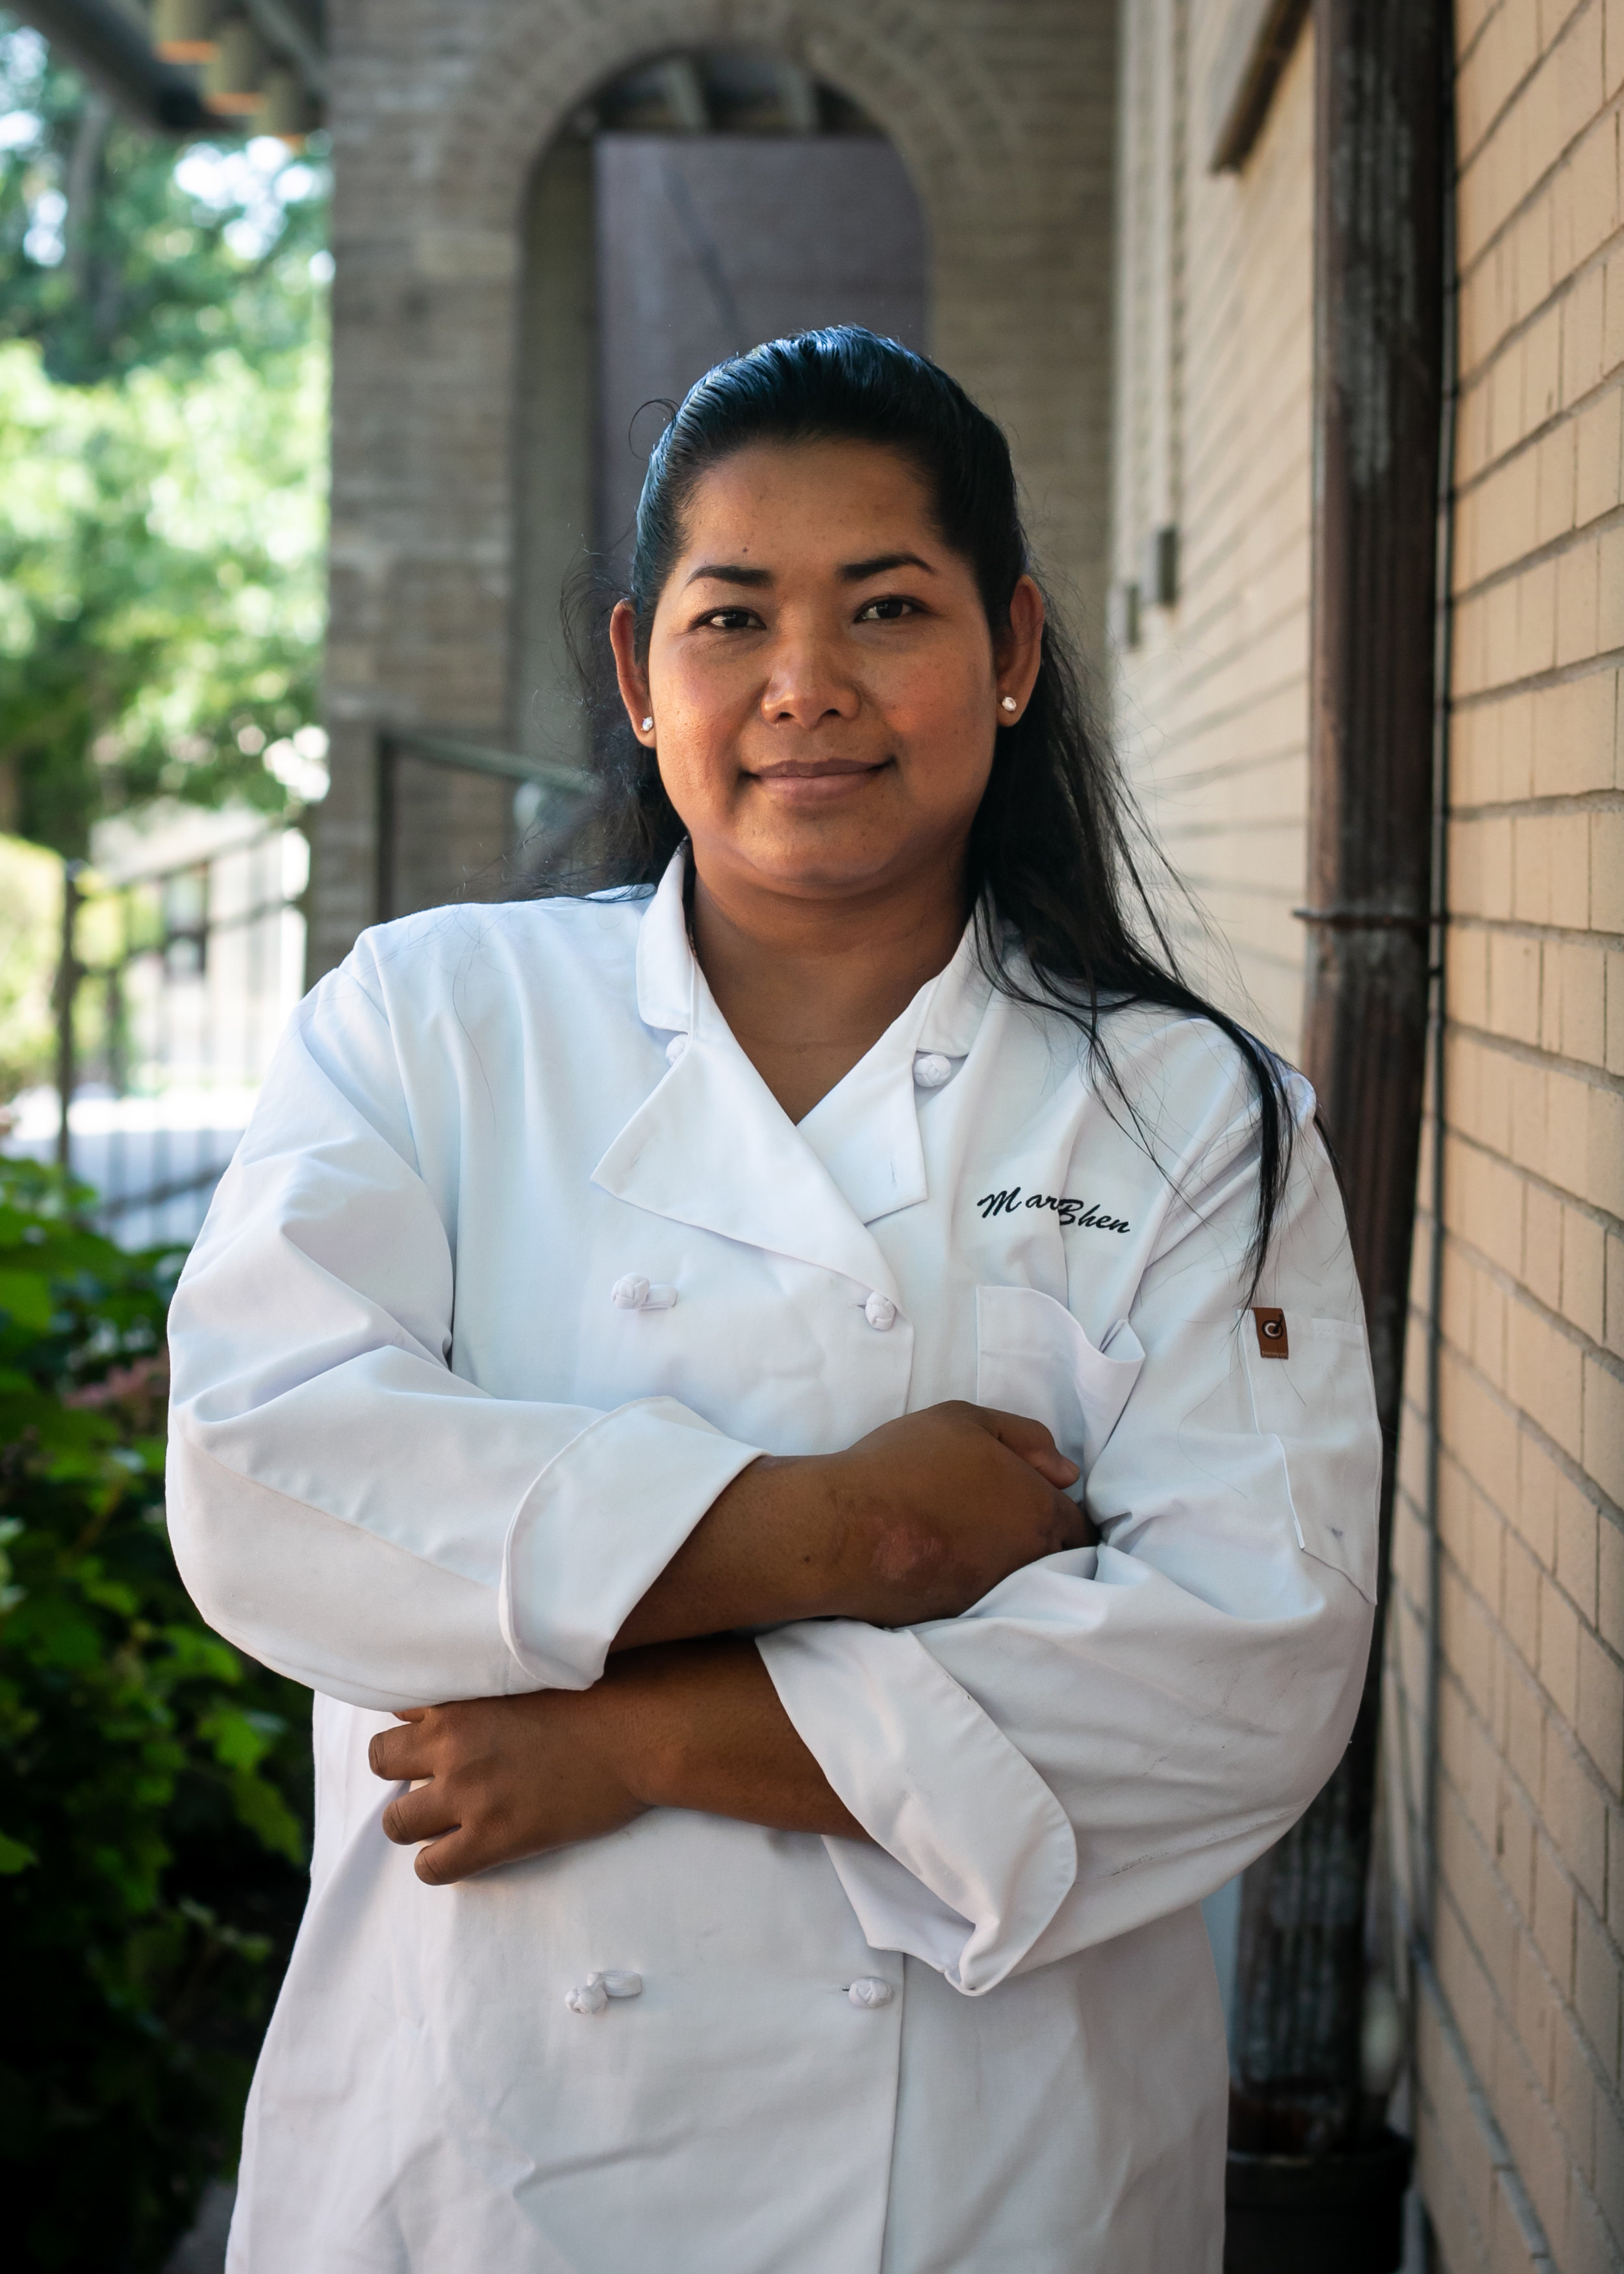 Maria Bhen, Cambodia  Maria Bhen left her homeland of Cambodia 10 years ago and settled in the United States. She just recently graduated from a local culinary program here in Cincinnati and if tastebuds are any measure, look for her and her Cambodian cuisine to stick around.